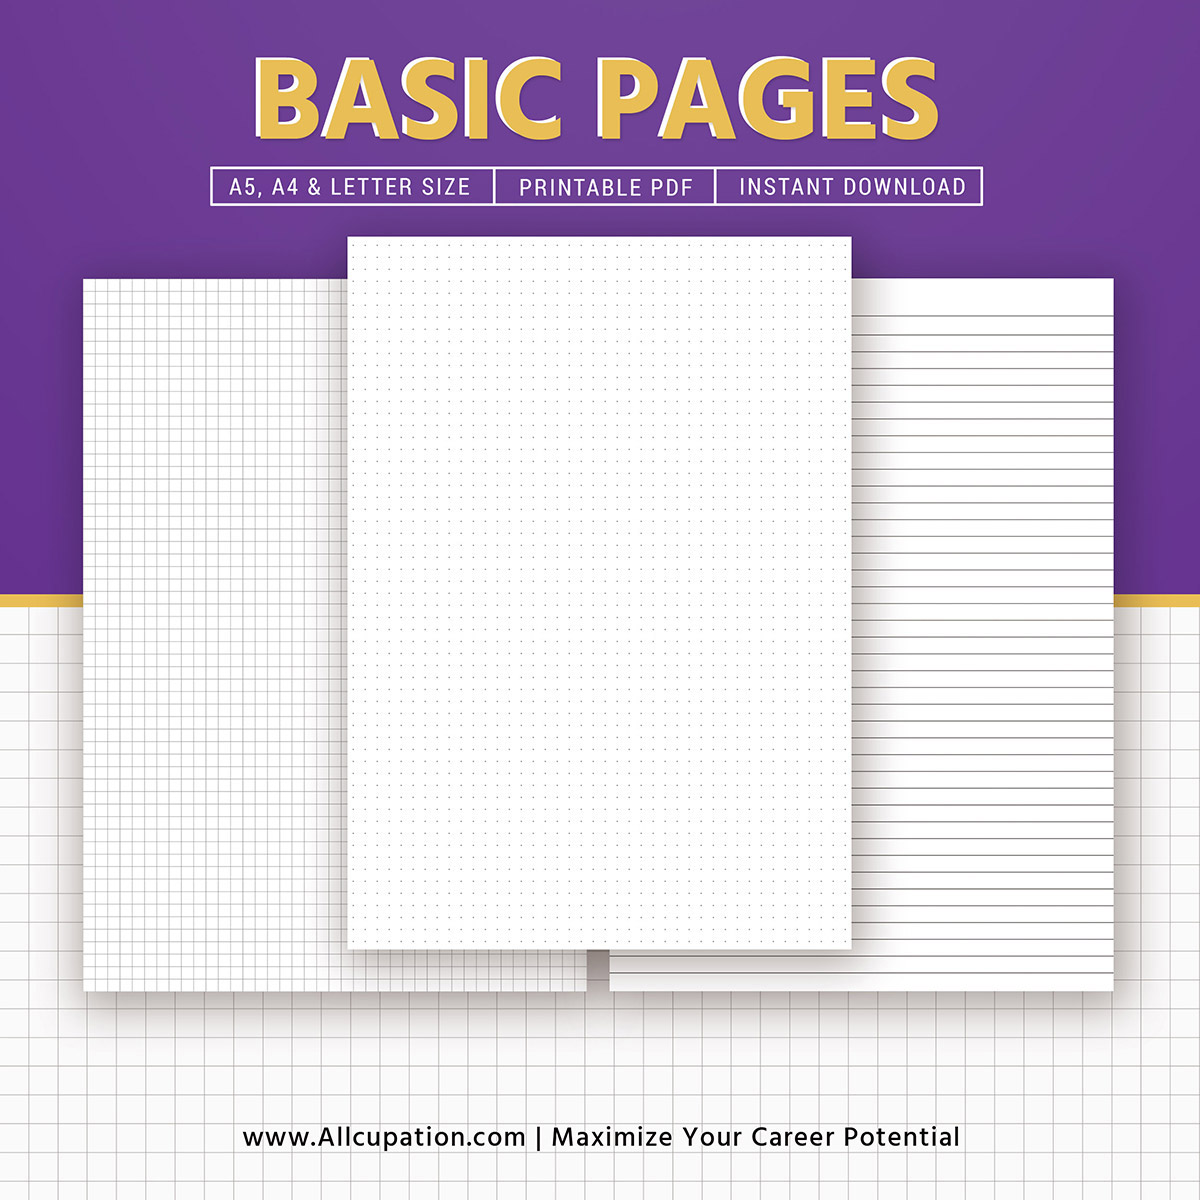 image relating to A5 Dot Grid Printable named Easy Web pages Inserts 2019, Dot Grid, Sq. Grid, Covered Paper, A4, Letter, Printable Planner, A5 Planner Binder, Filofax A5, Immediate Down load